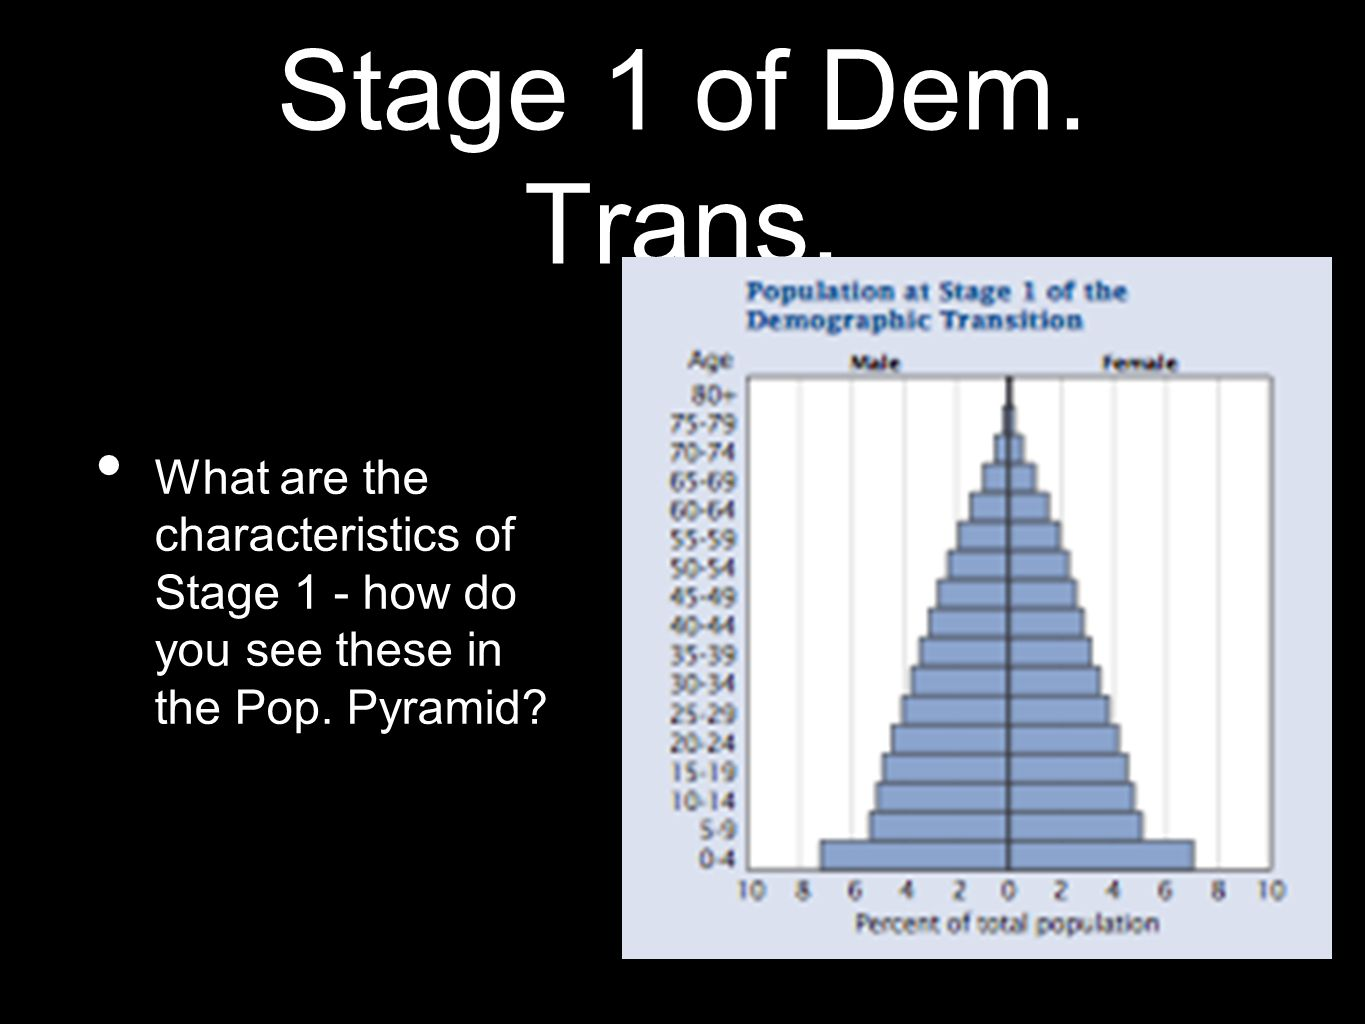 Stage 1 of Dem. Trans. What are the characteristics of Stage 1 - how do you see these in the Pop. Pyramid?